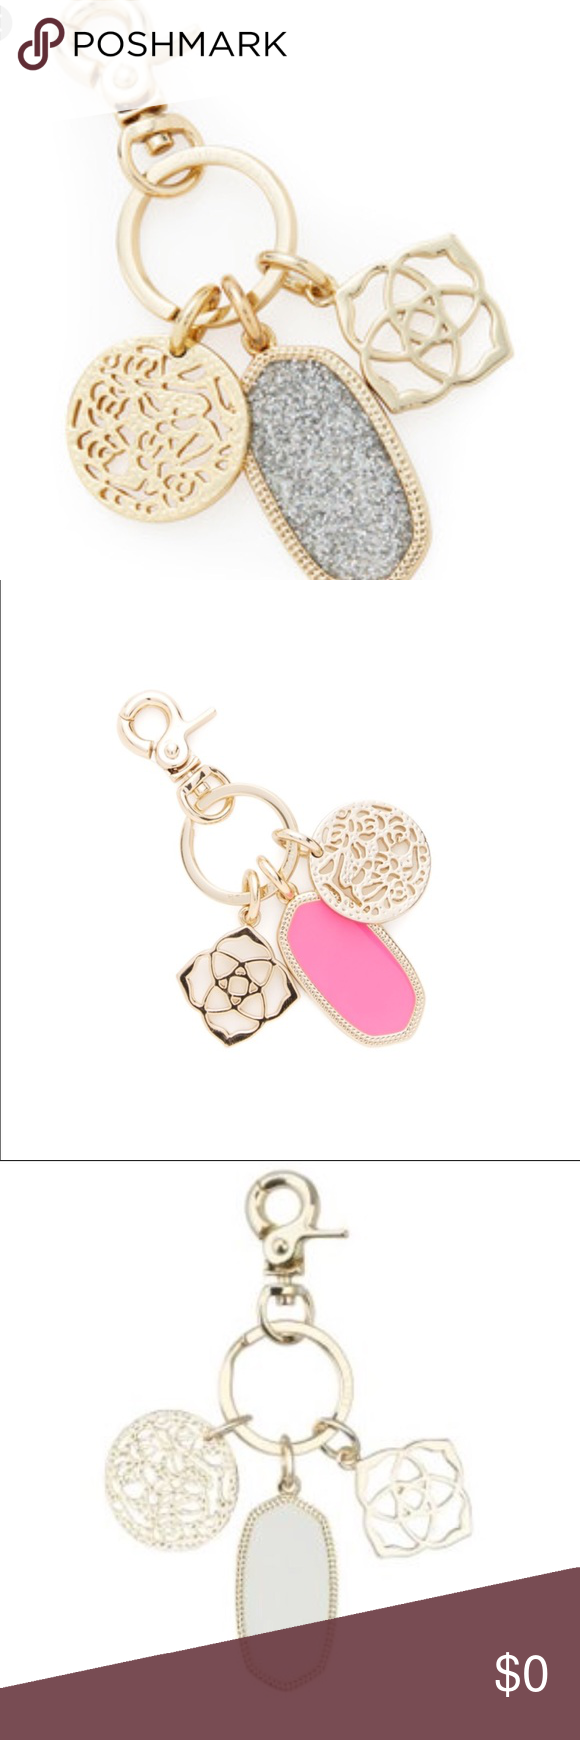 ISO!!!!!! Looking for Kendra Scott Keychain